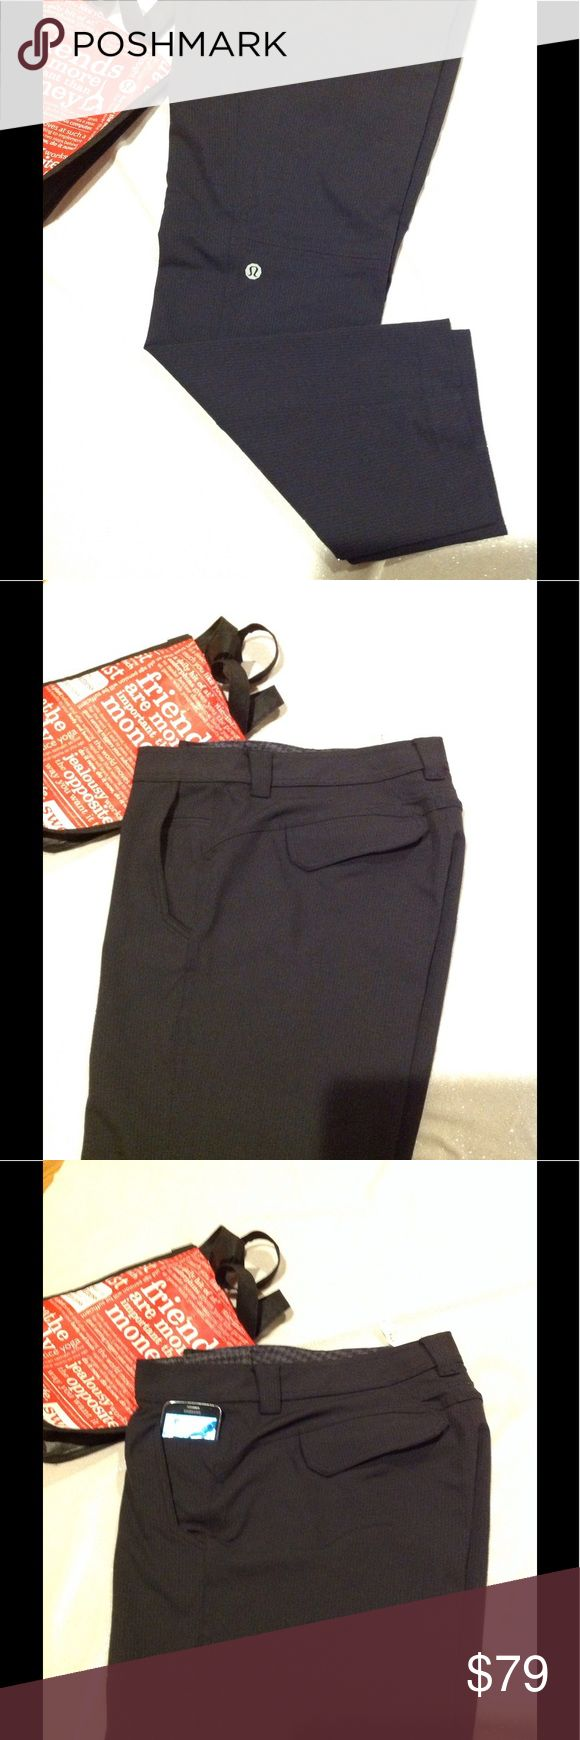 Lululemon 🍋men work to play pants size 38 Lululemon 🍋Work to Play men pants size 38 inseam 34 great condition like news rare to find they can be used as casual dress 5 pockets, large logo on left leg. lululemon athletica Pants